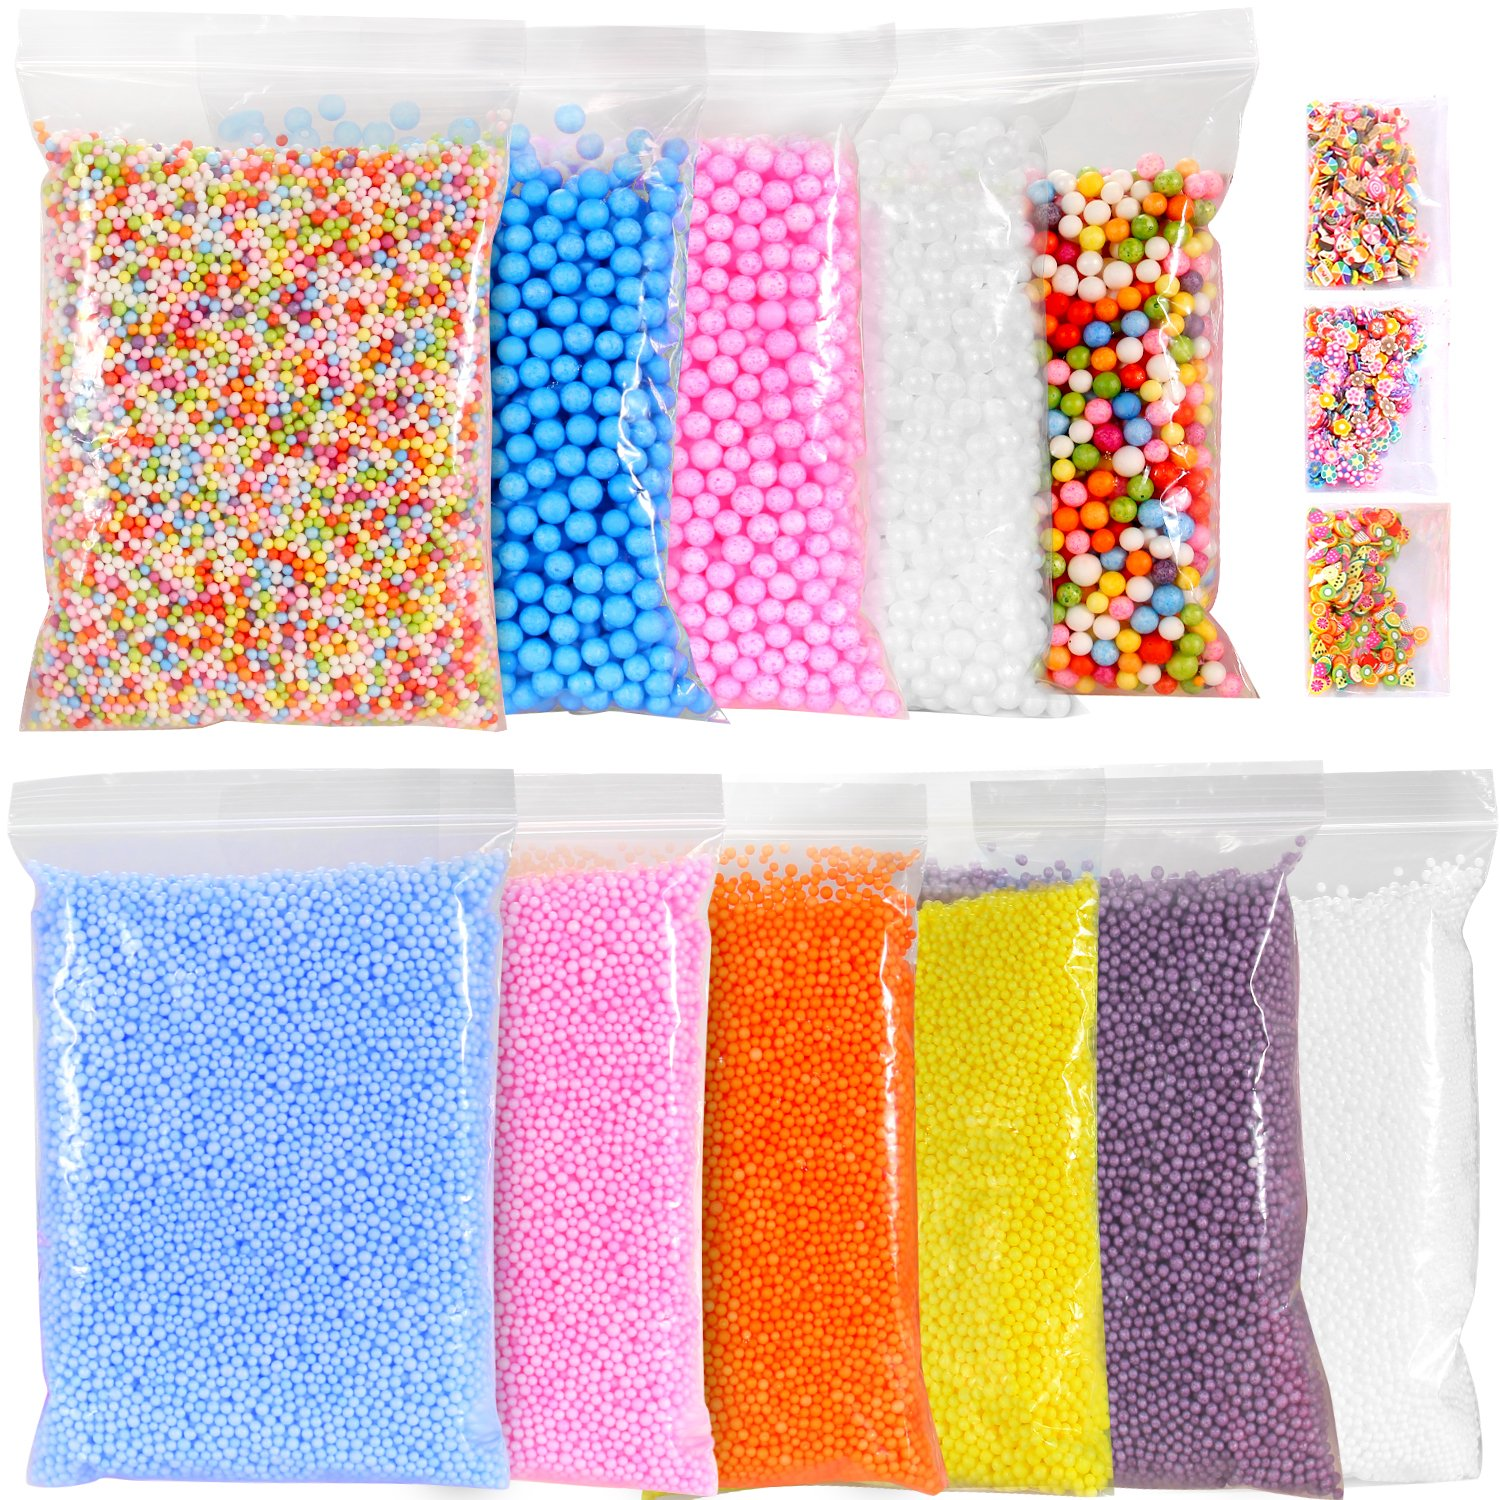 Case of 2 Boxes, 14-Packs per Box, A Box Including 14 Packs Approx 60,000 PCS Decorative Slime Beads for Arts Crafts for Kids Children Students Back to School Slime Toy